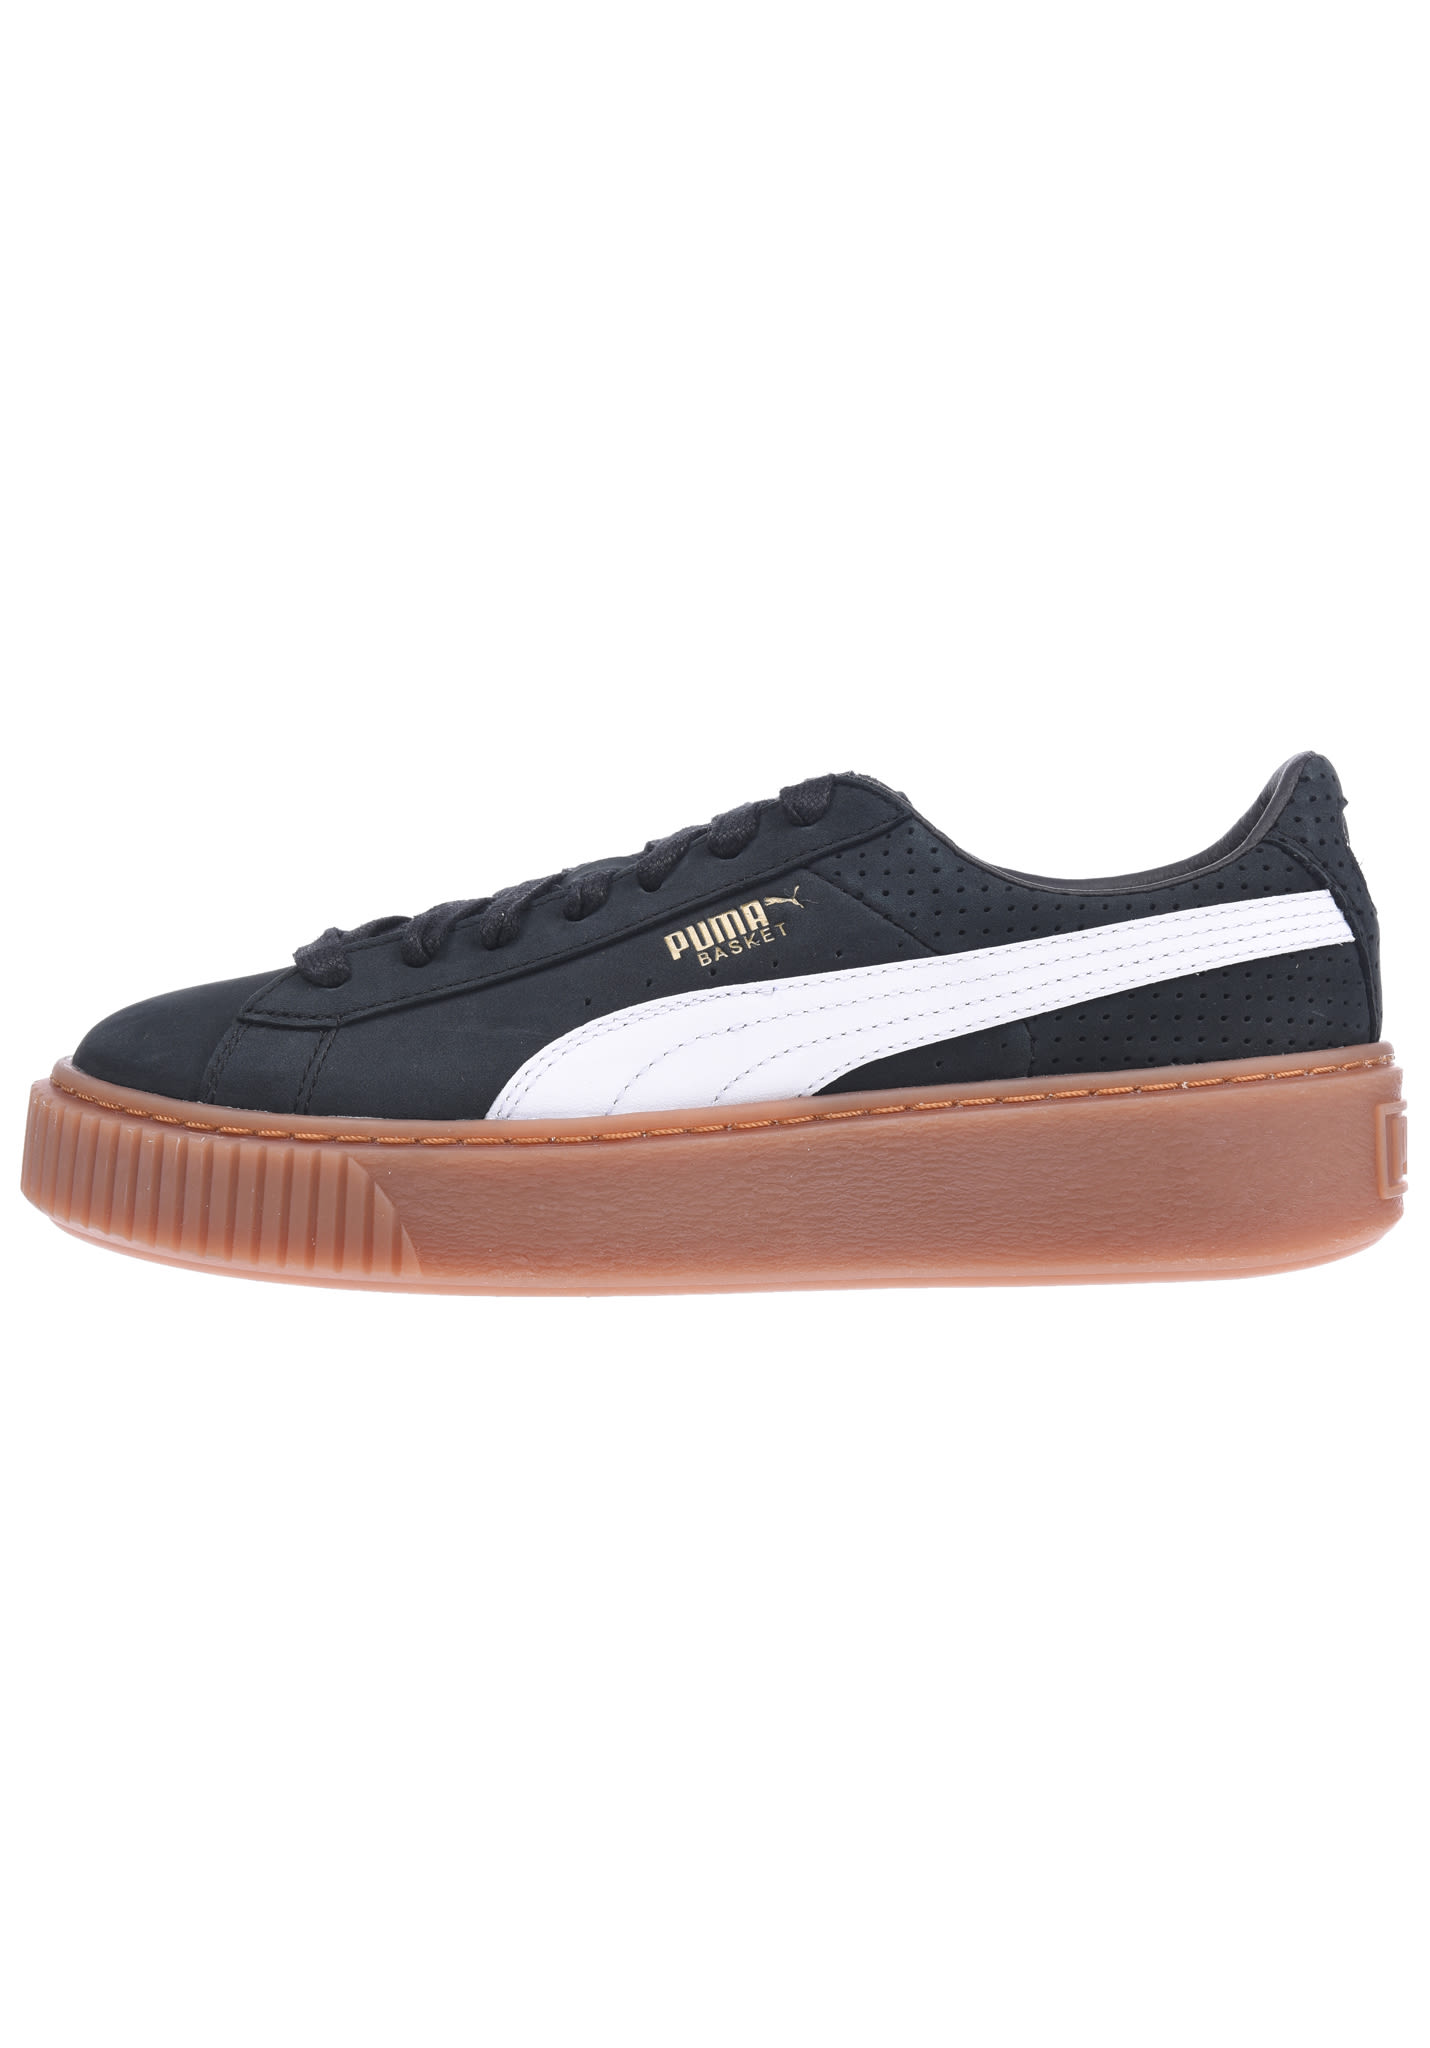 Puma Sale 70 Outlet Planet Sports Bis Zu • r41Pxwqr